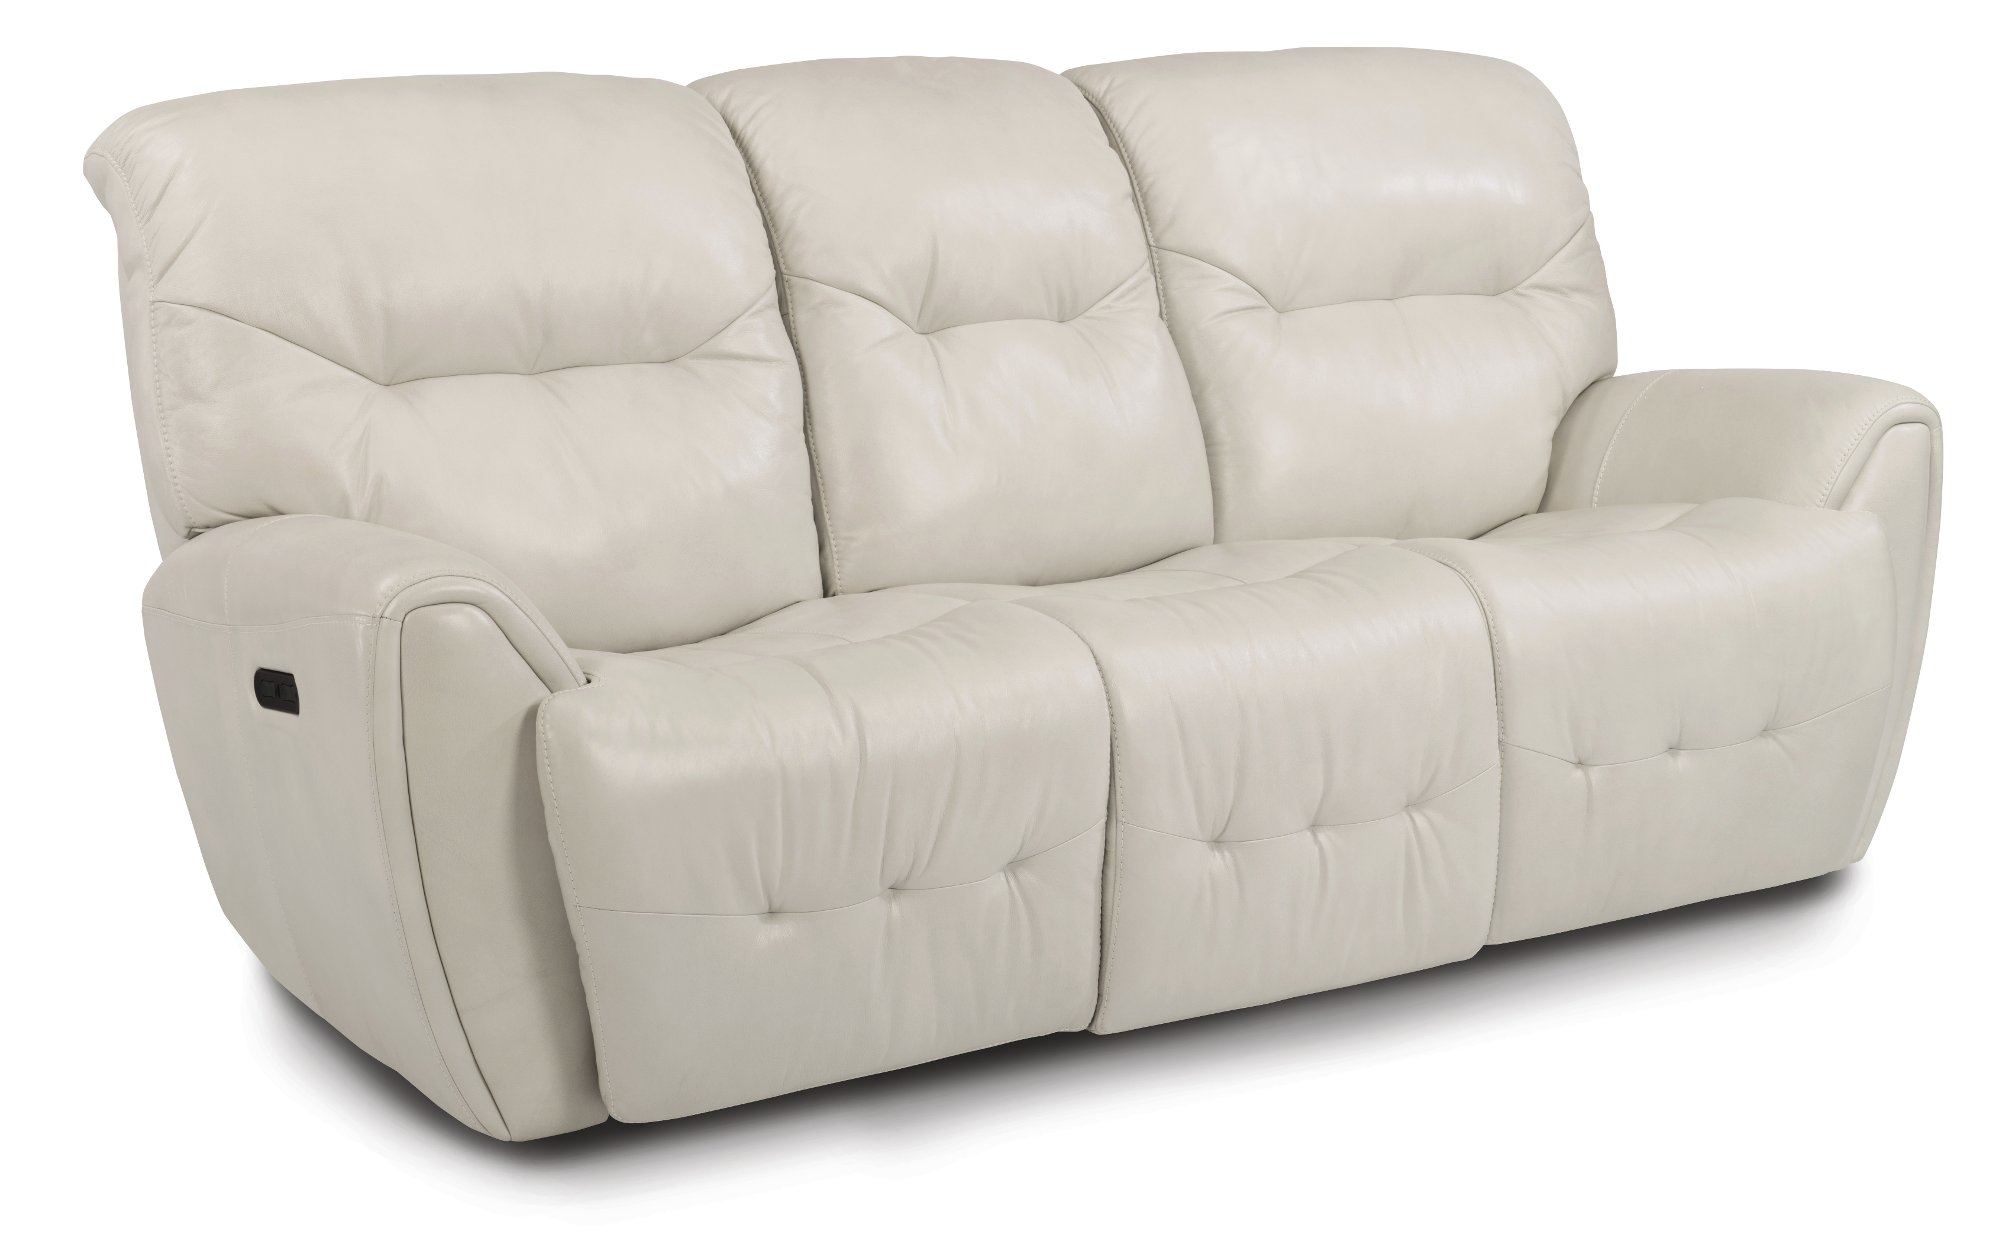 Icelandic White Leather Match Power Sofa Loveseat Blaise Rc Willey Furniture Store